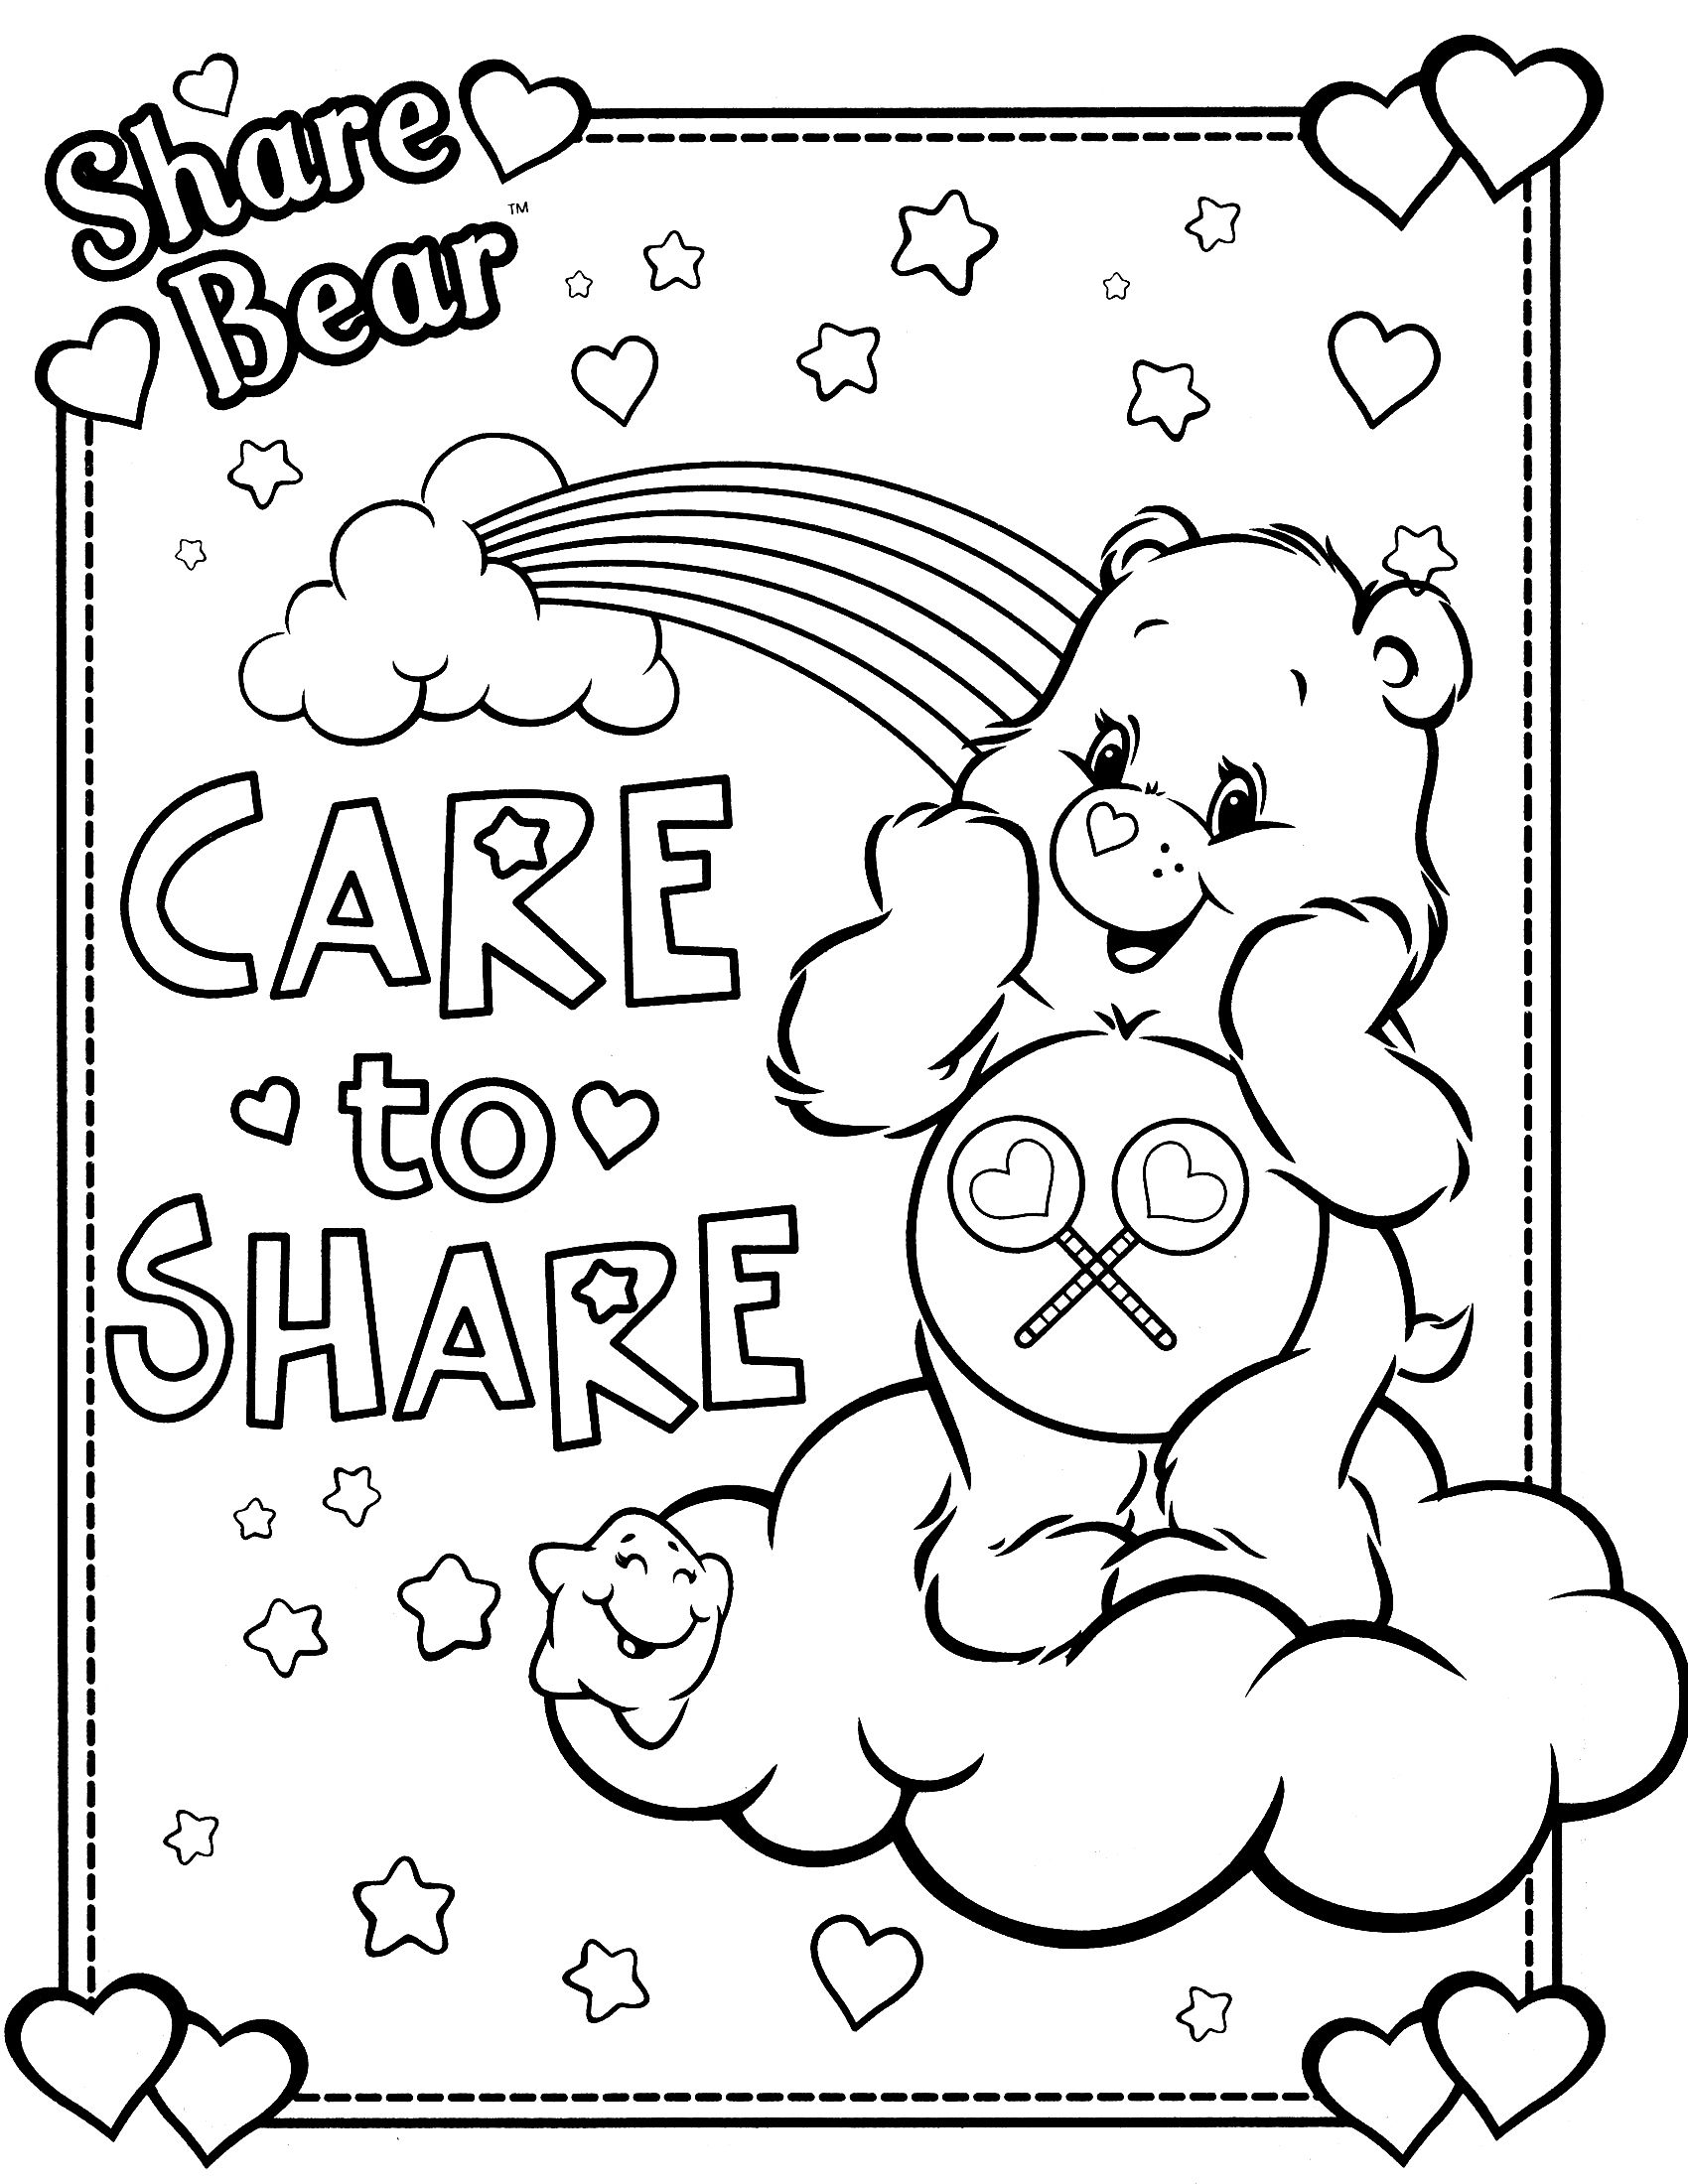 care bears coloring pages | Care Bears Coloring Page 11 ...